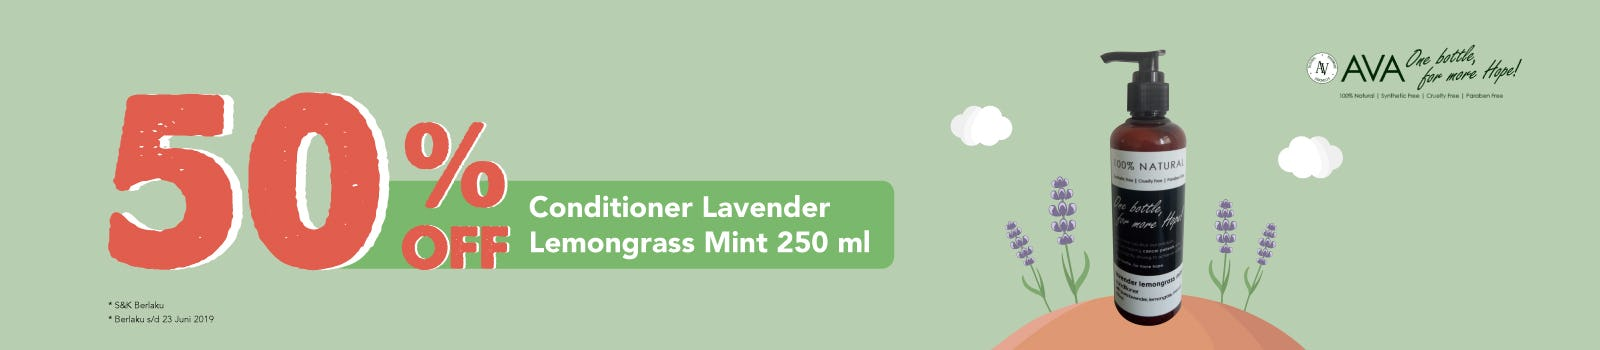 Ava Natural Conditioner Lavender Lemongrass Mint 250 ml 50% OFF